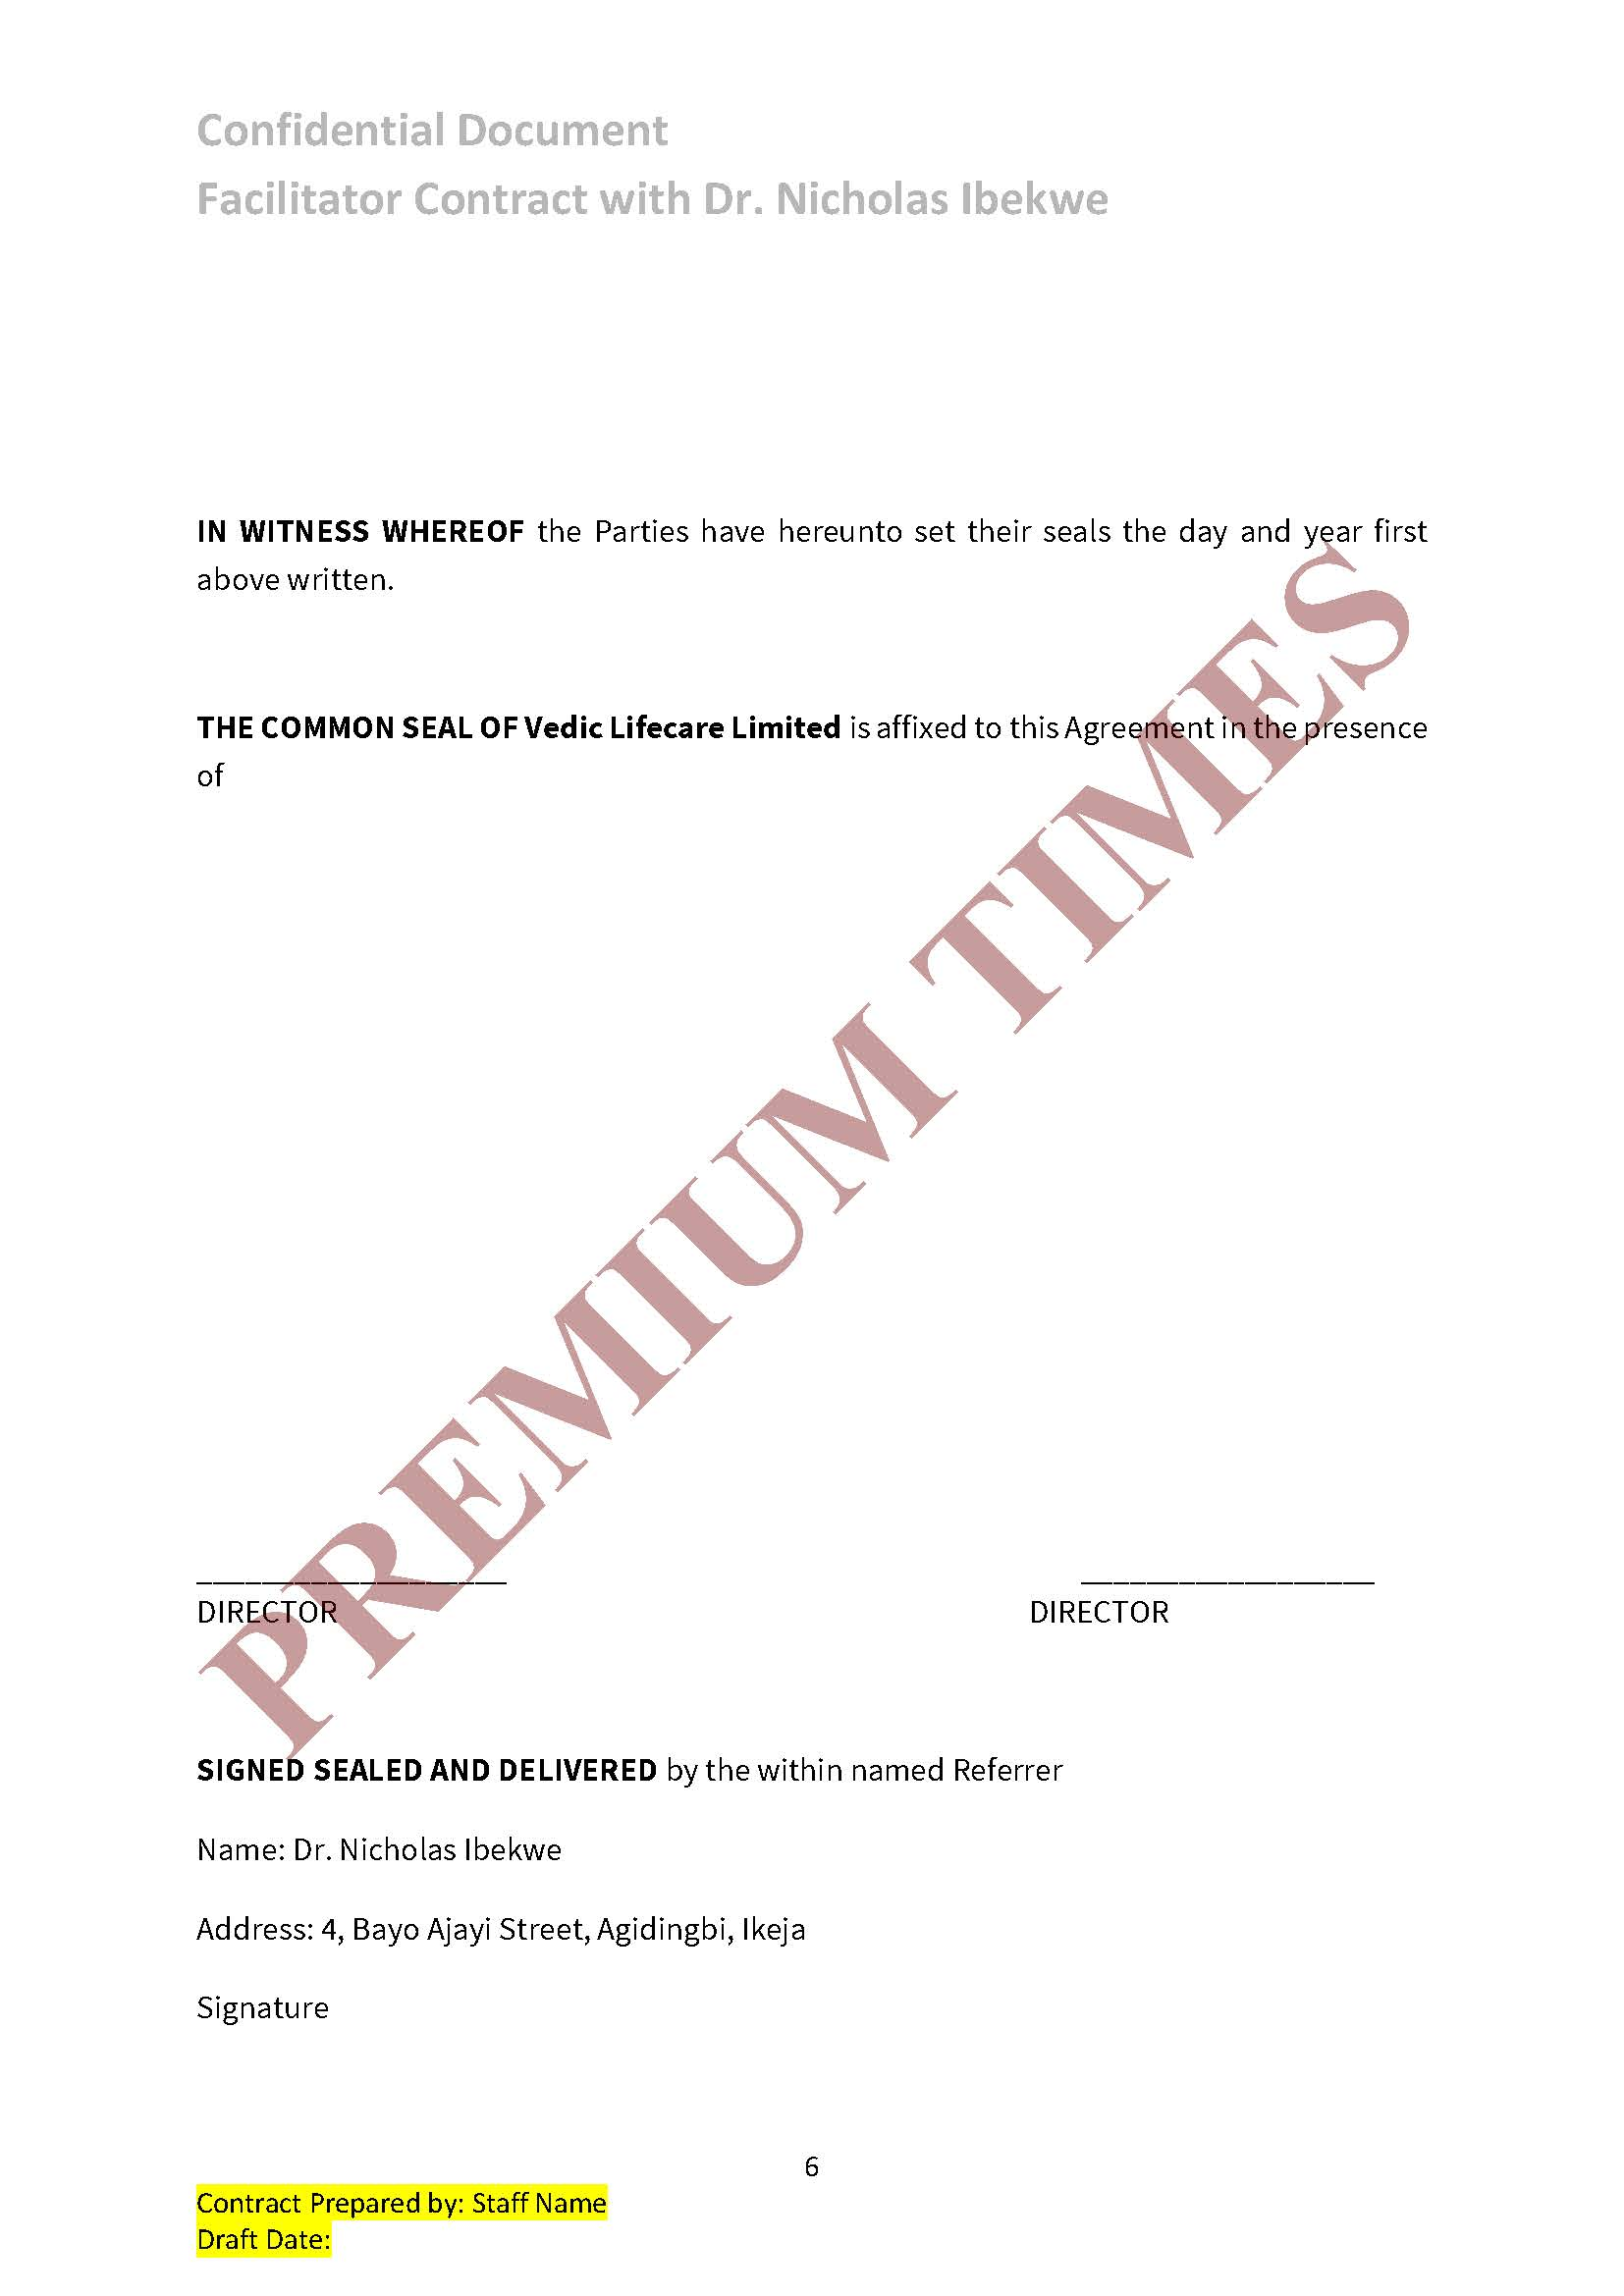 Vedic Referral Contract (Page 6)